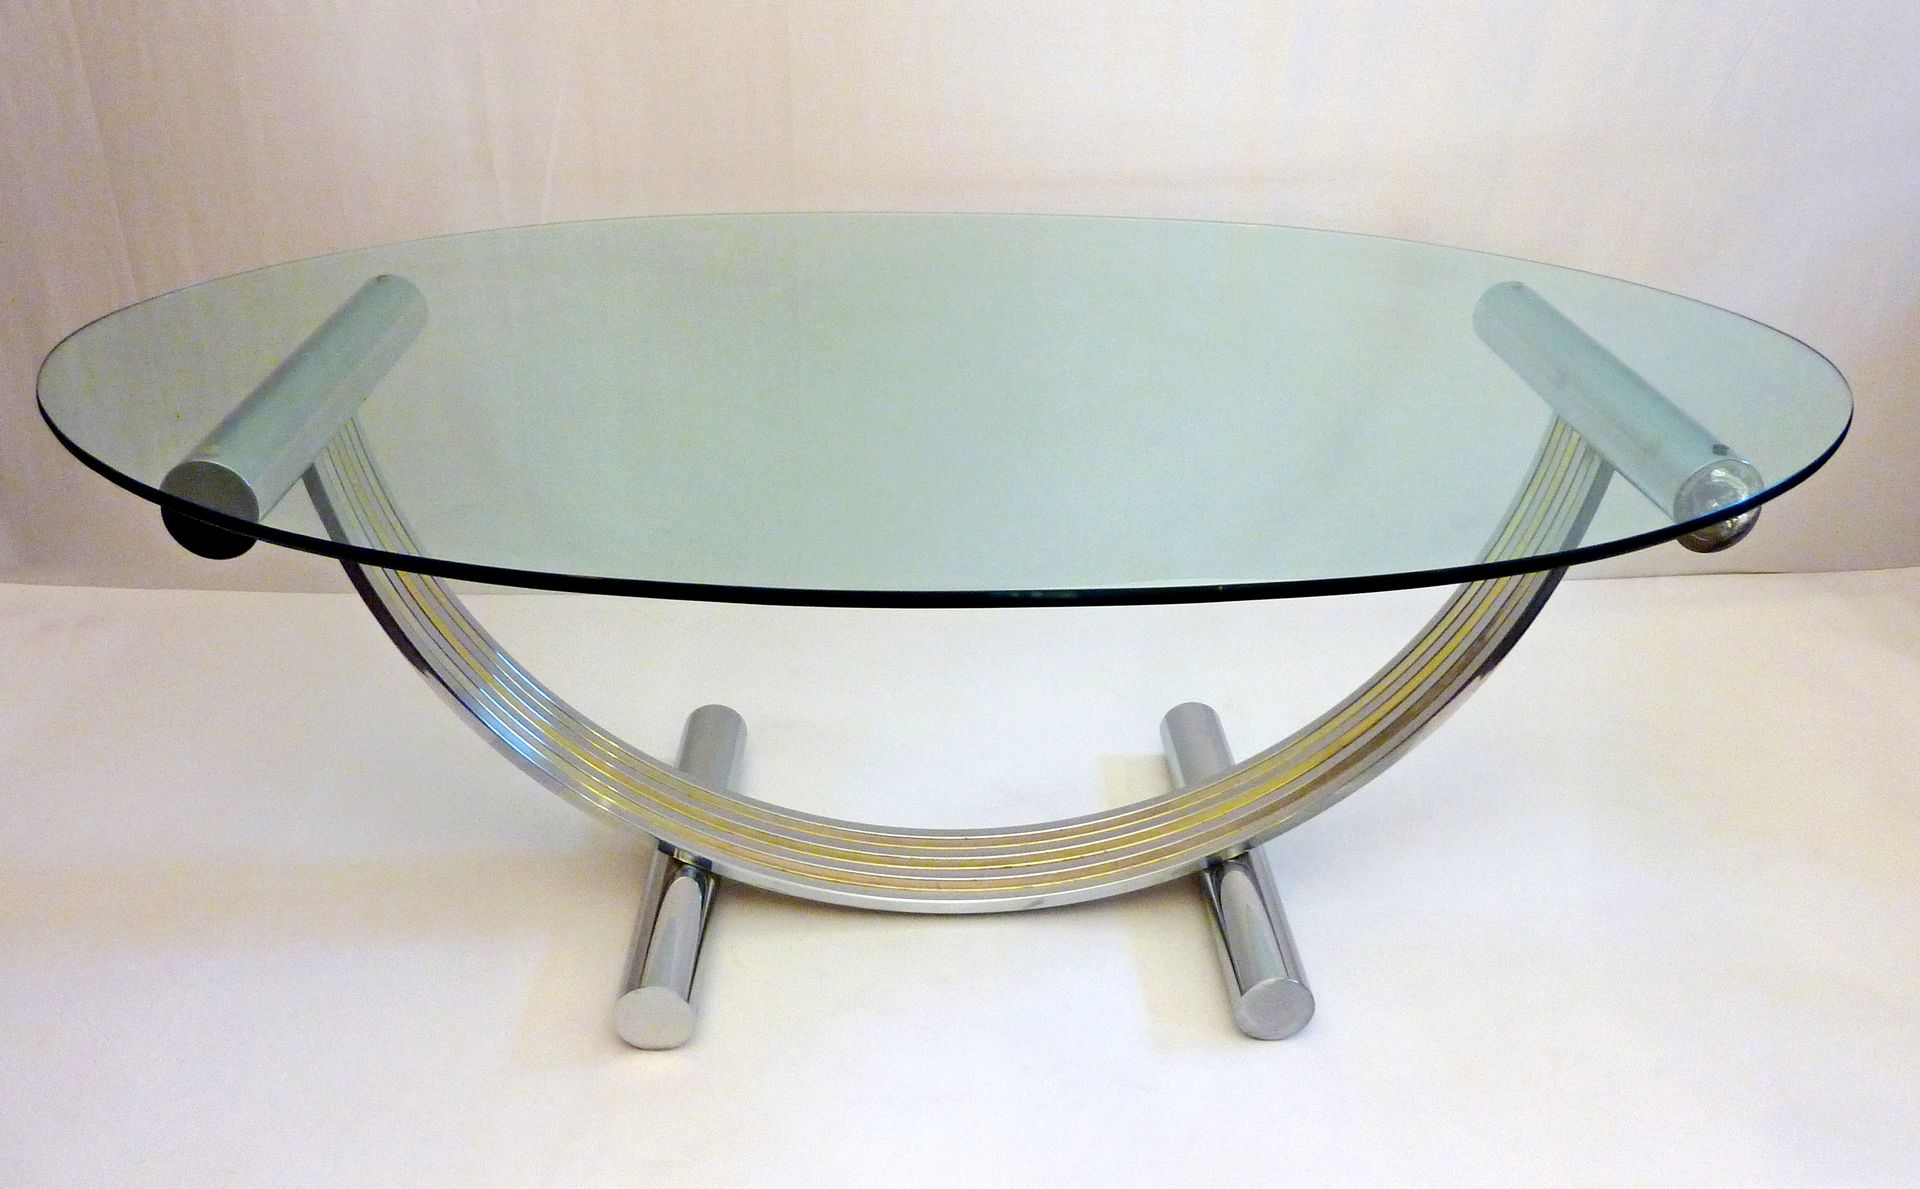 Oval Glass Dining Table by Romeo Rega 1970s for sale at  : oval glass dining table by romeo rega 1970s 2 from www.pamono.com size 1920 x 1189 jpeg 169kB